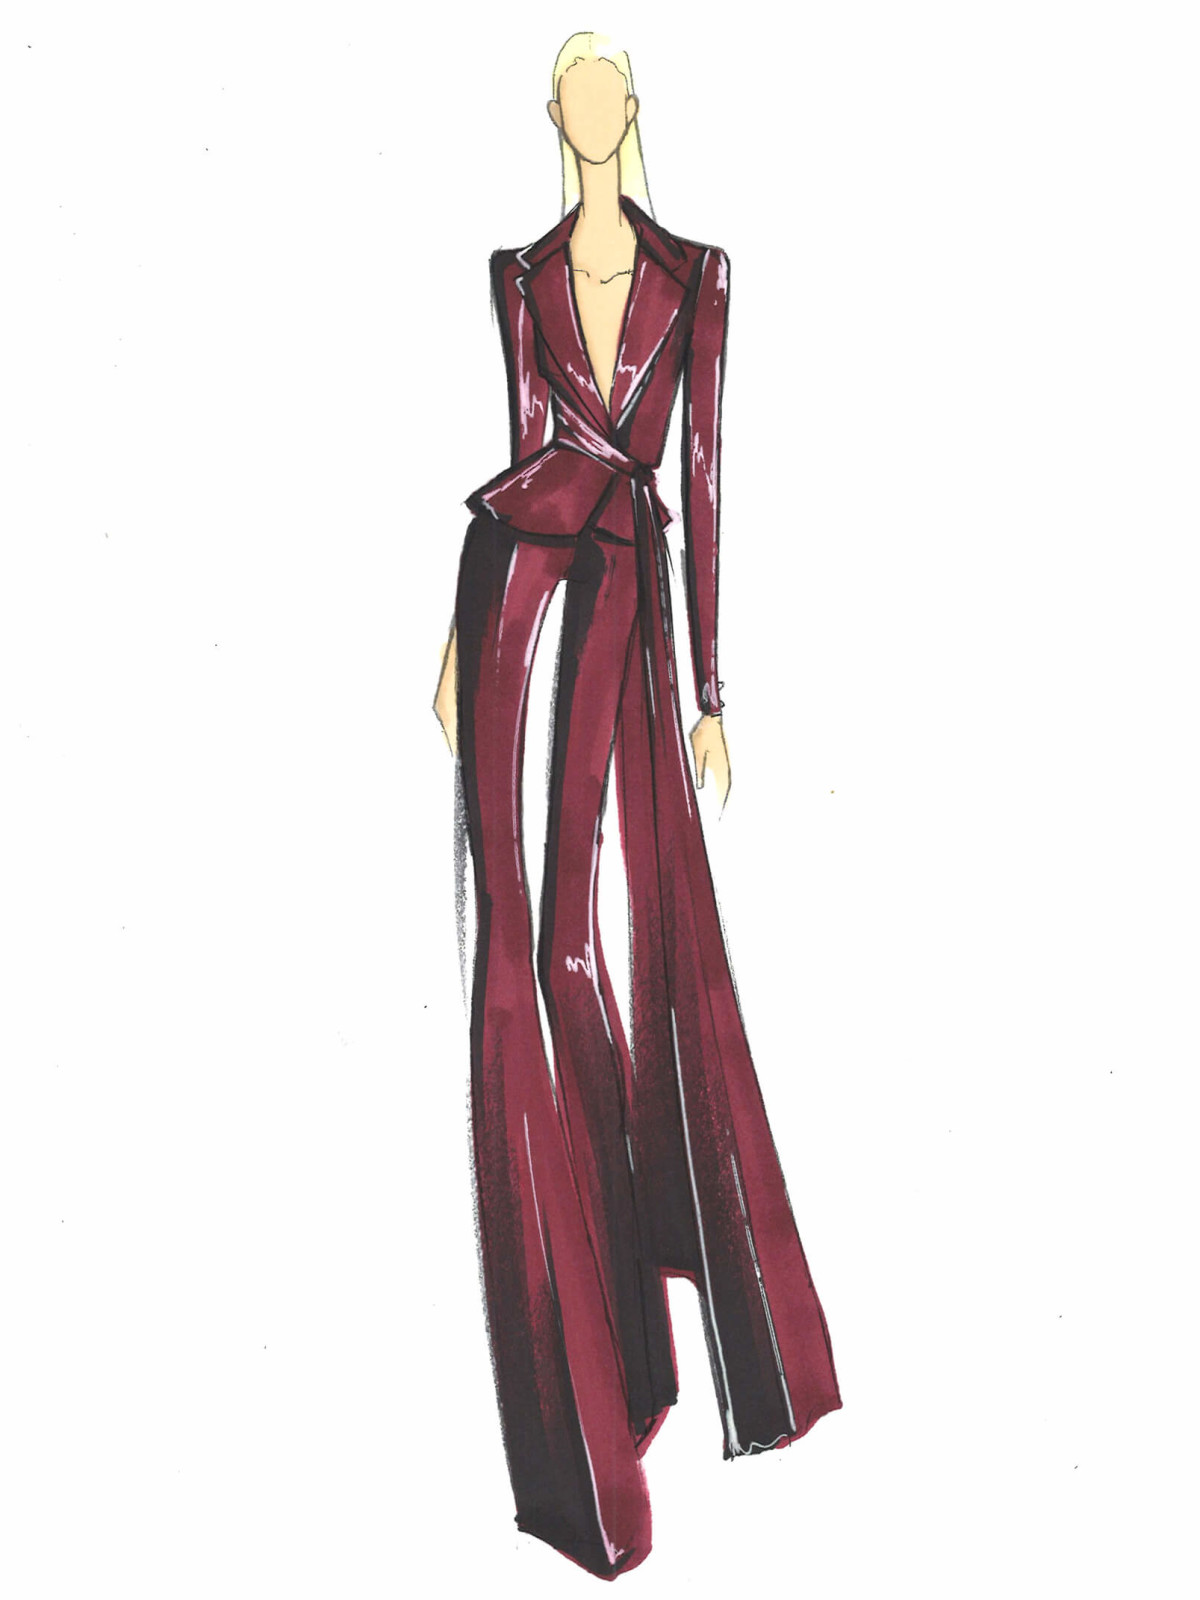 Pamella Roland fall 2017 inspiration sketch